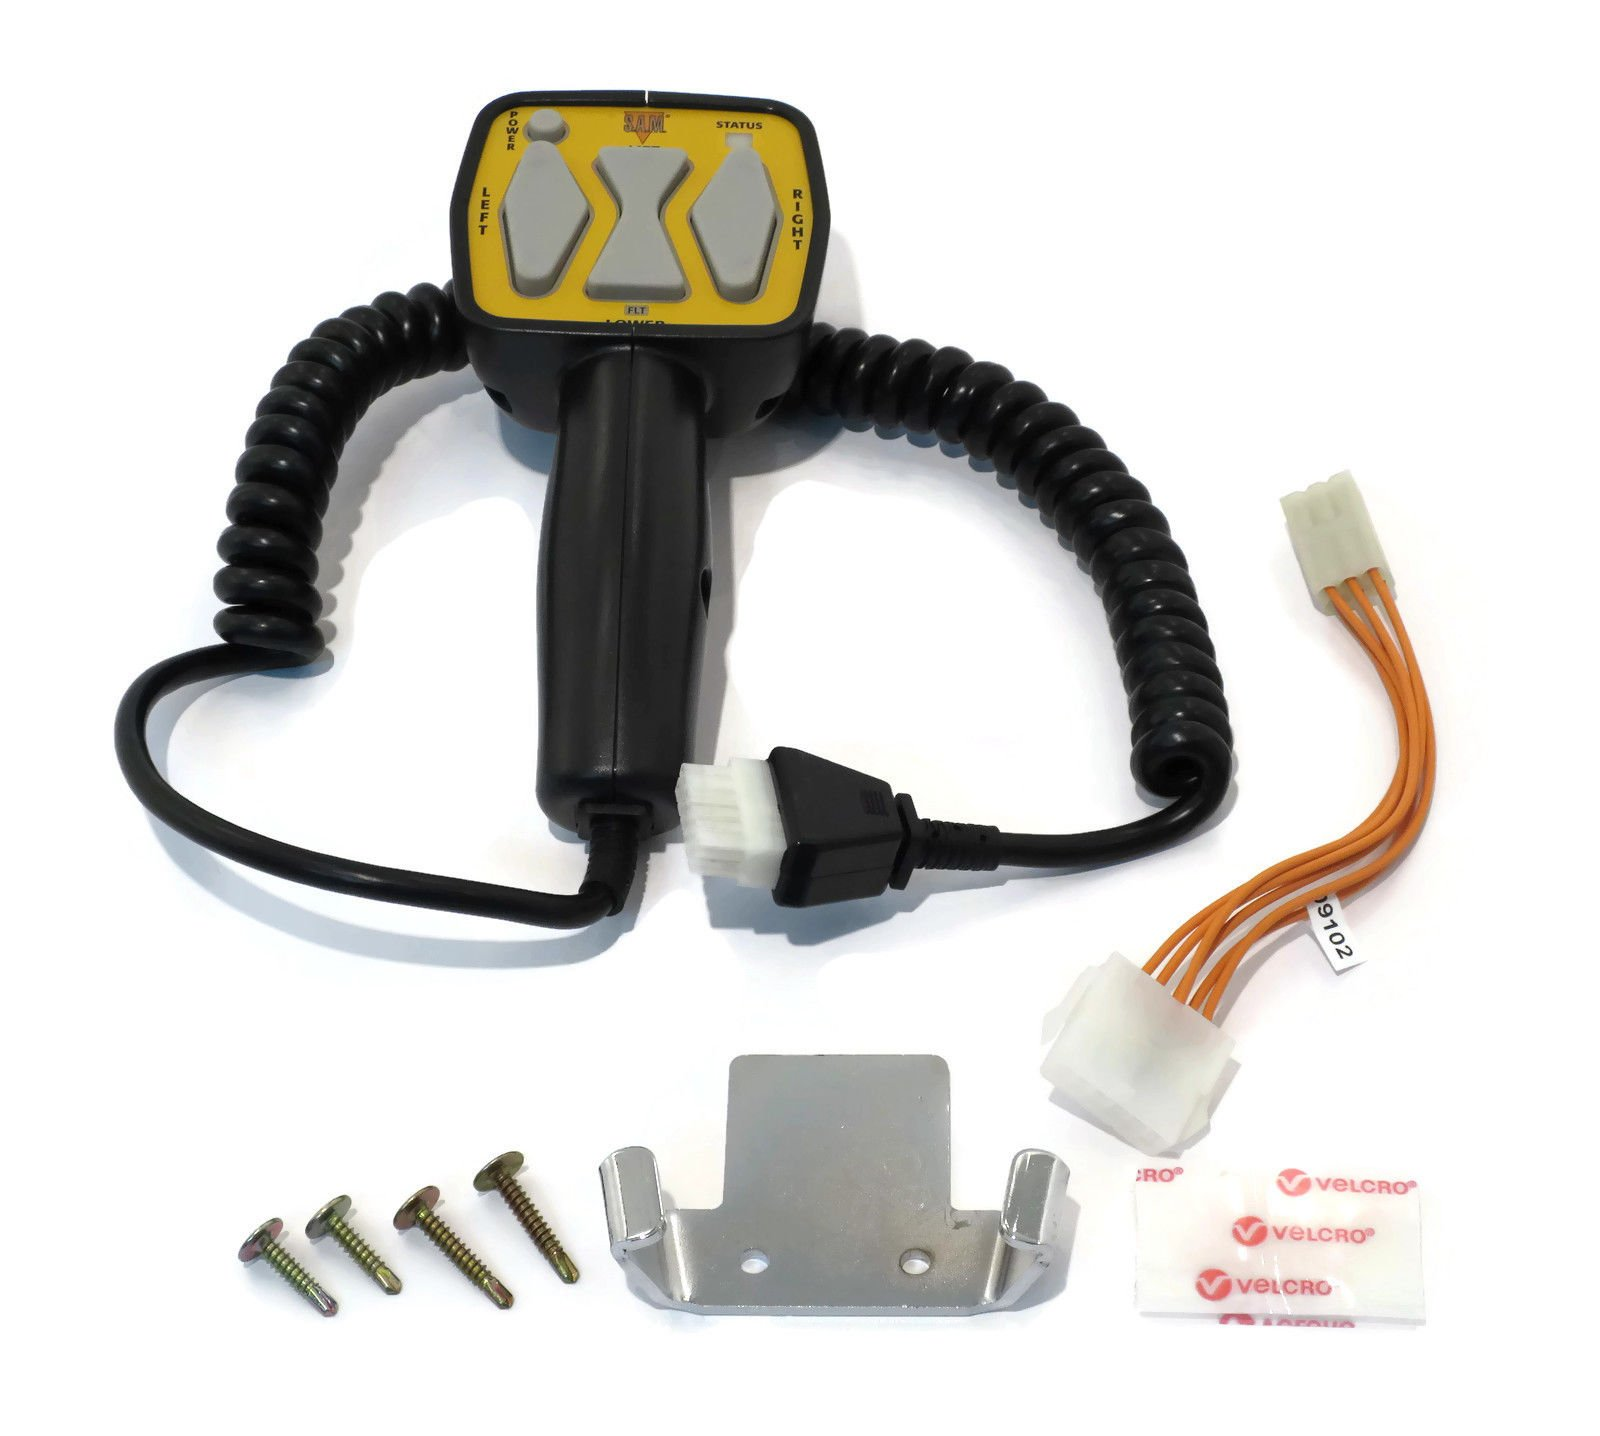 HAND HELD CONTROLLER for Meyer Diamond 22154 22690 for Buyers SAM 1306901 Plow by The ROP Shop